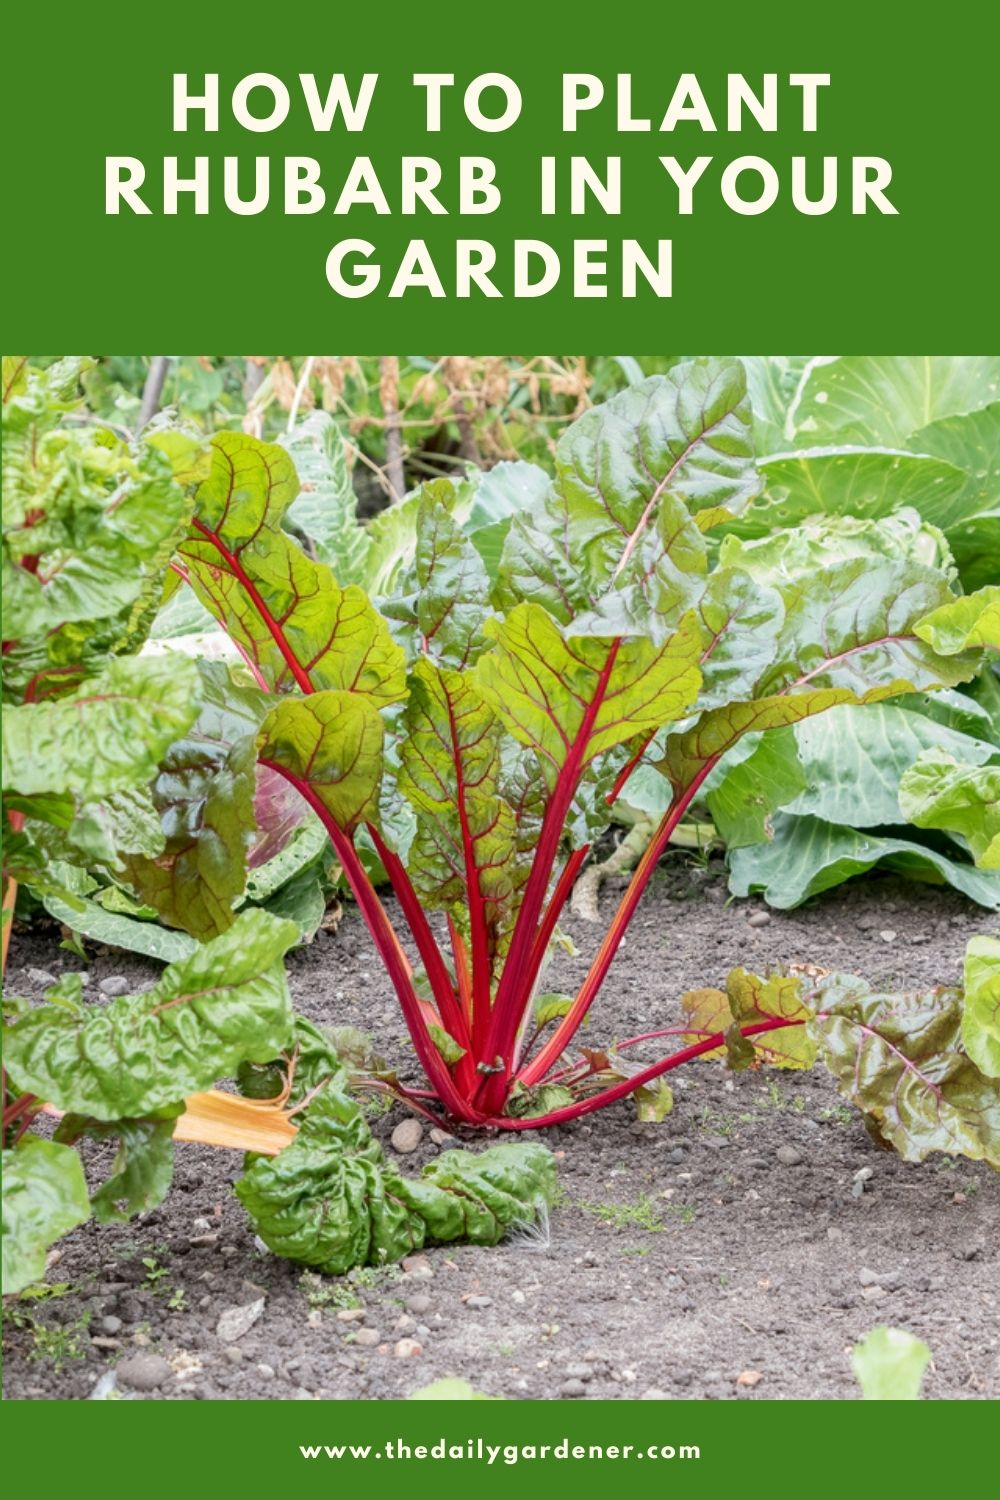 How to Plant Rhubarb in Your Garden (Tricks to Care!) 1